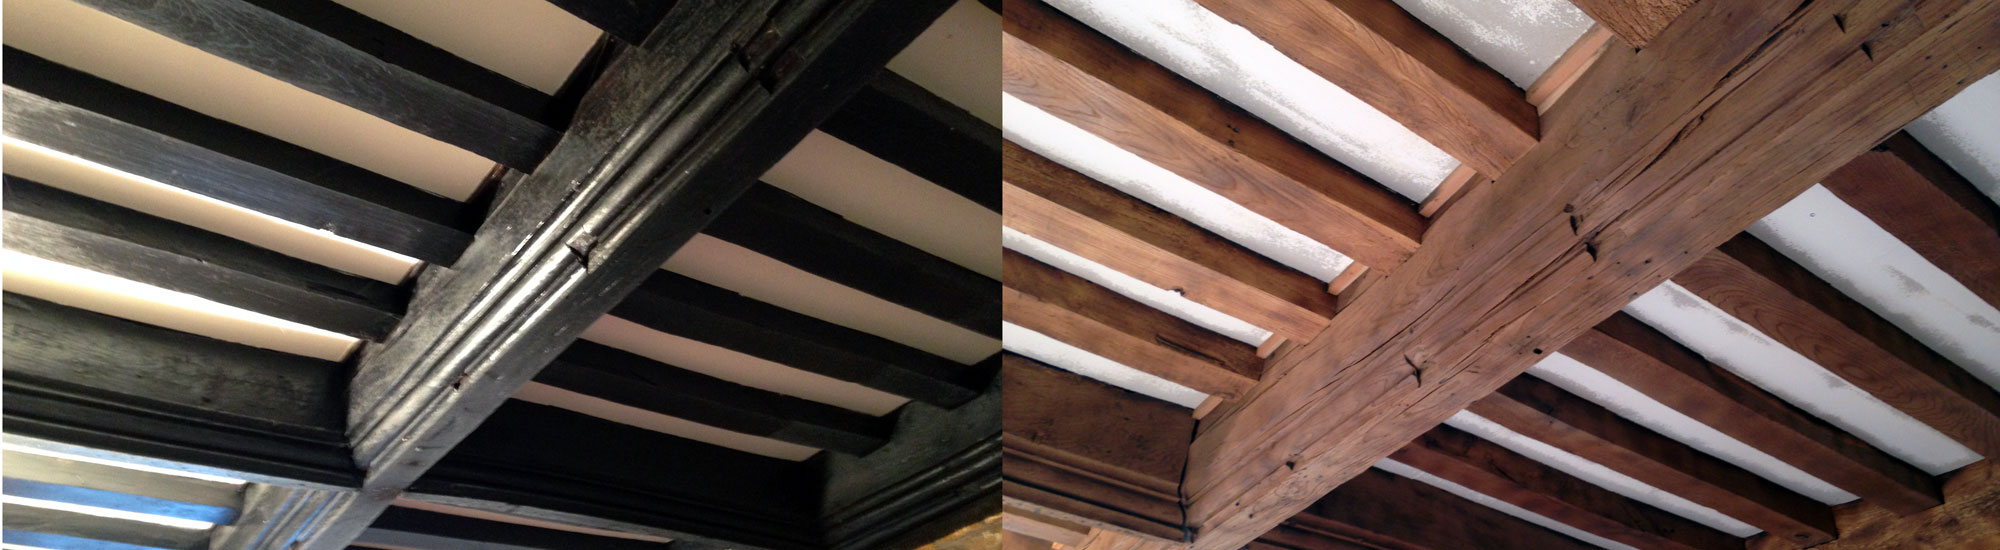 Oak Beam Blast Cleaning Restoration